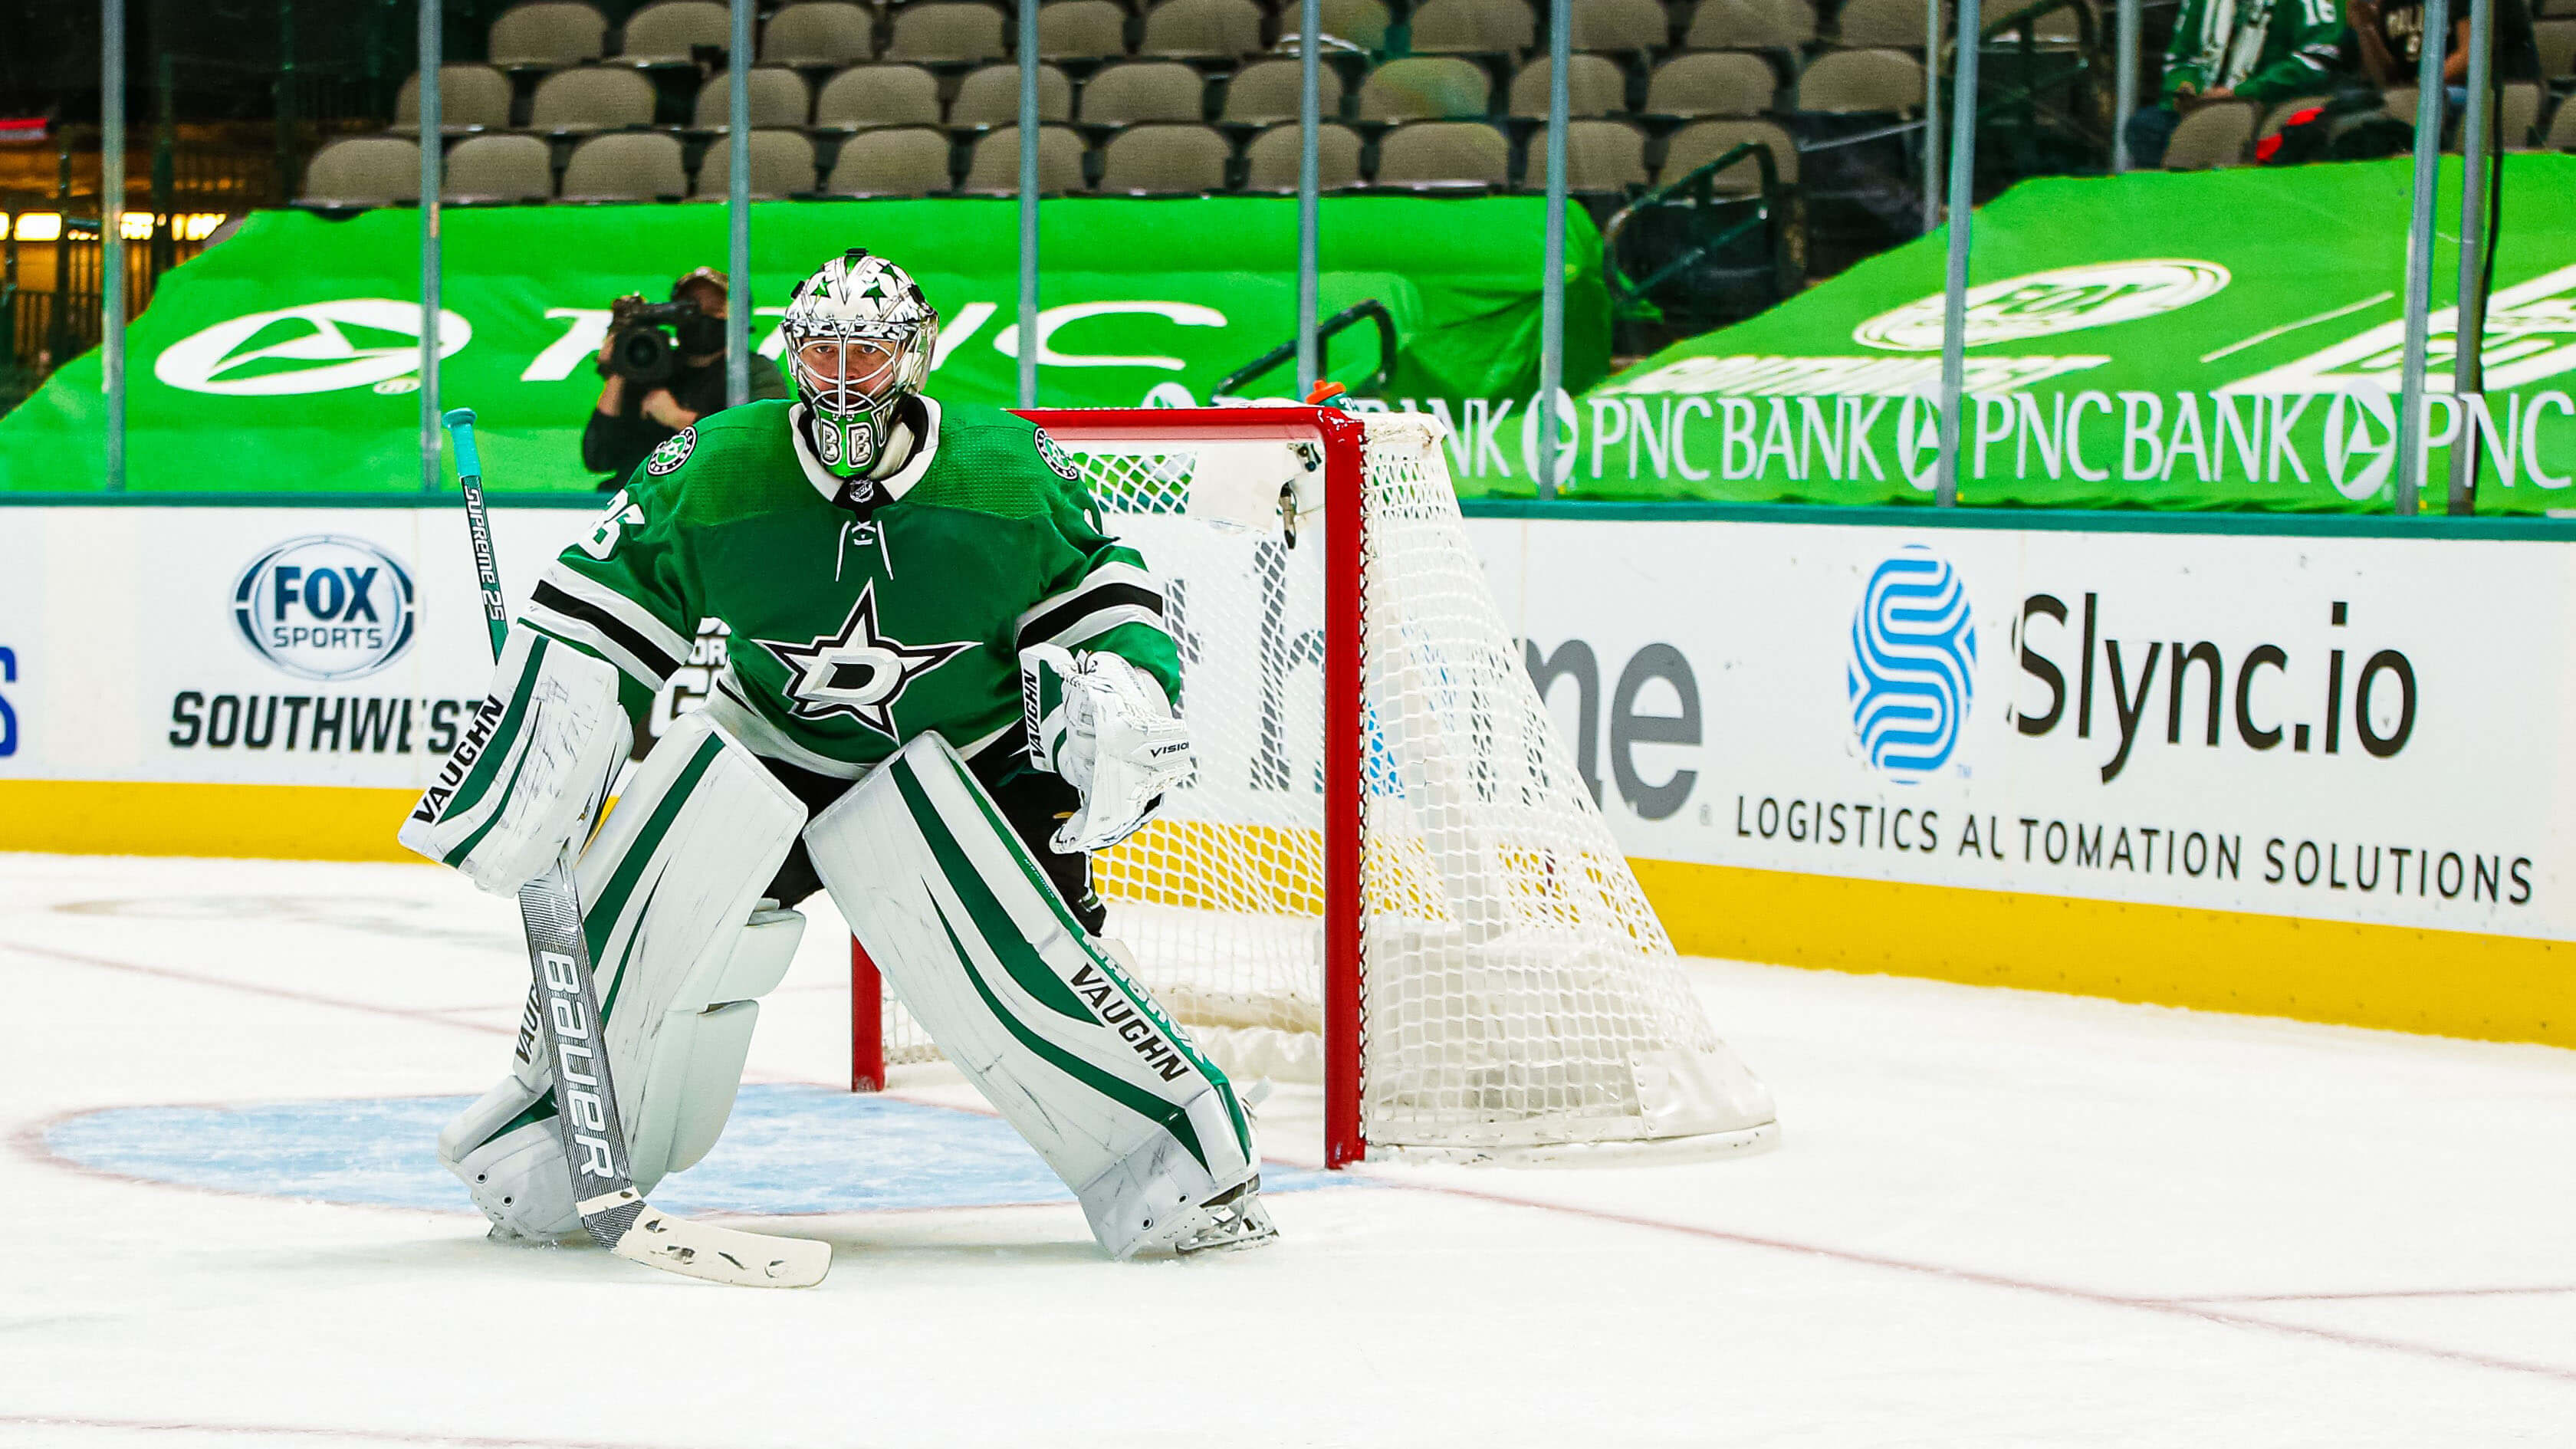 Anton Khudobin gets in goal to defend the net for the Dallas Stars, home and away.